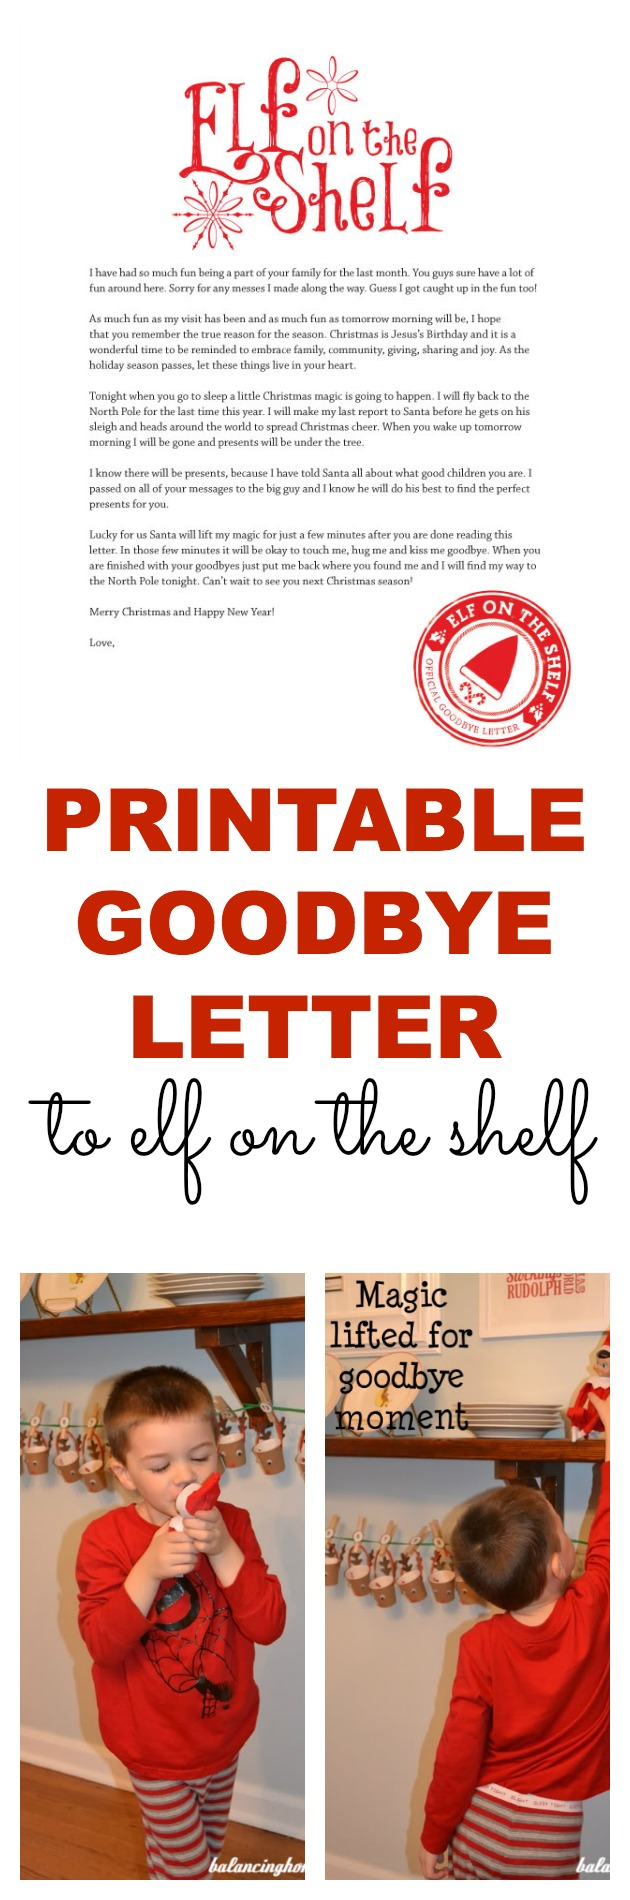 Printable goodbye letter for elf on the shelf perfect way to wrap